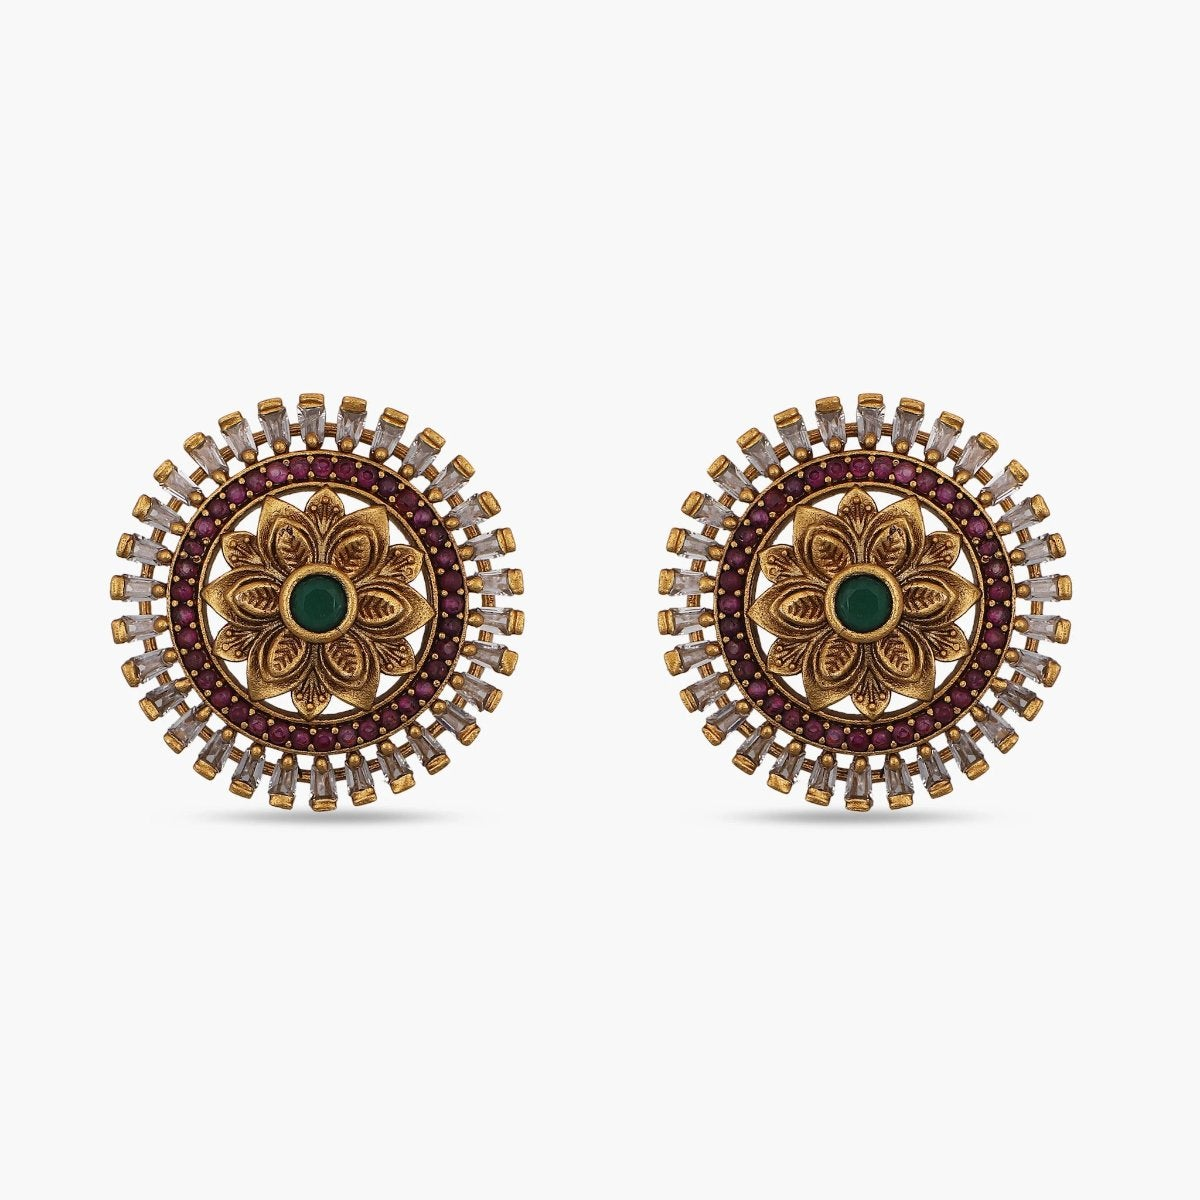 Mesha Antique Earrings